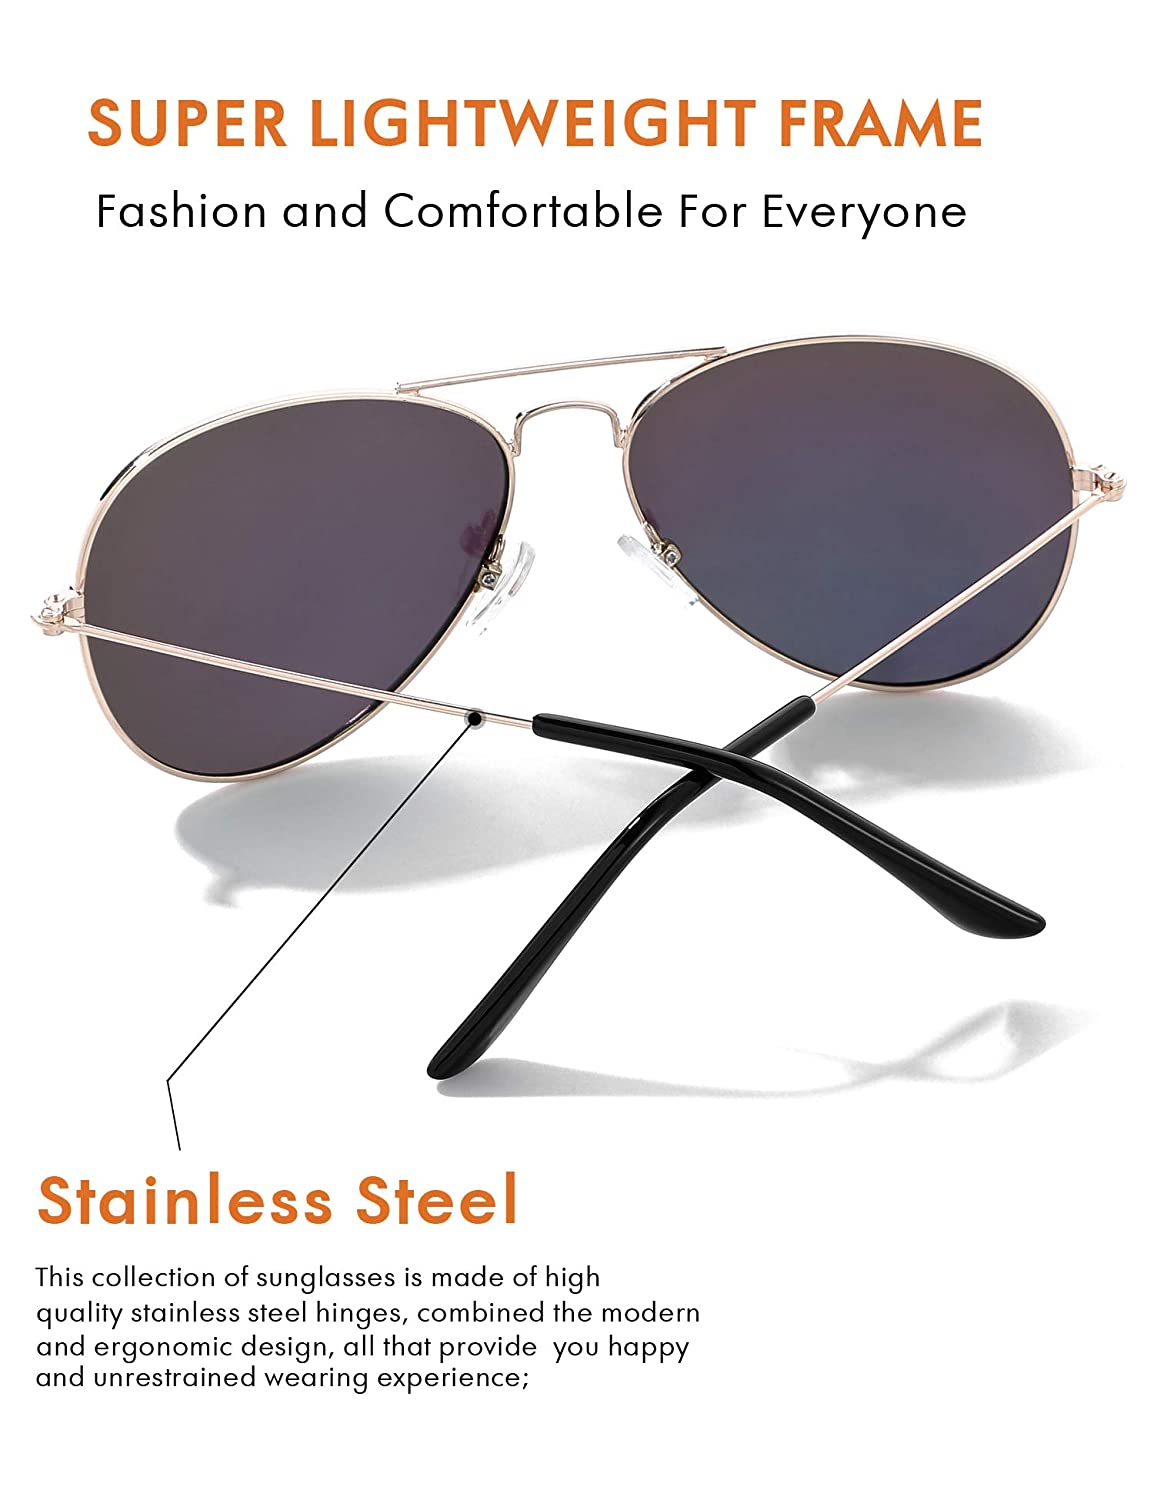 58MM Mirrored Aviator Sunglasses for Women Polarized Vintage Mens Shades Classic Eyewear UV Protection with Case